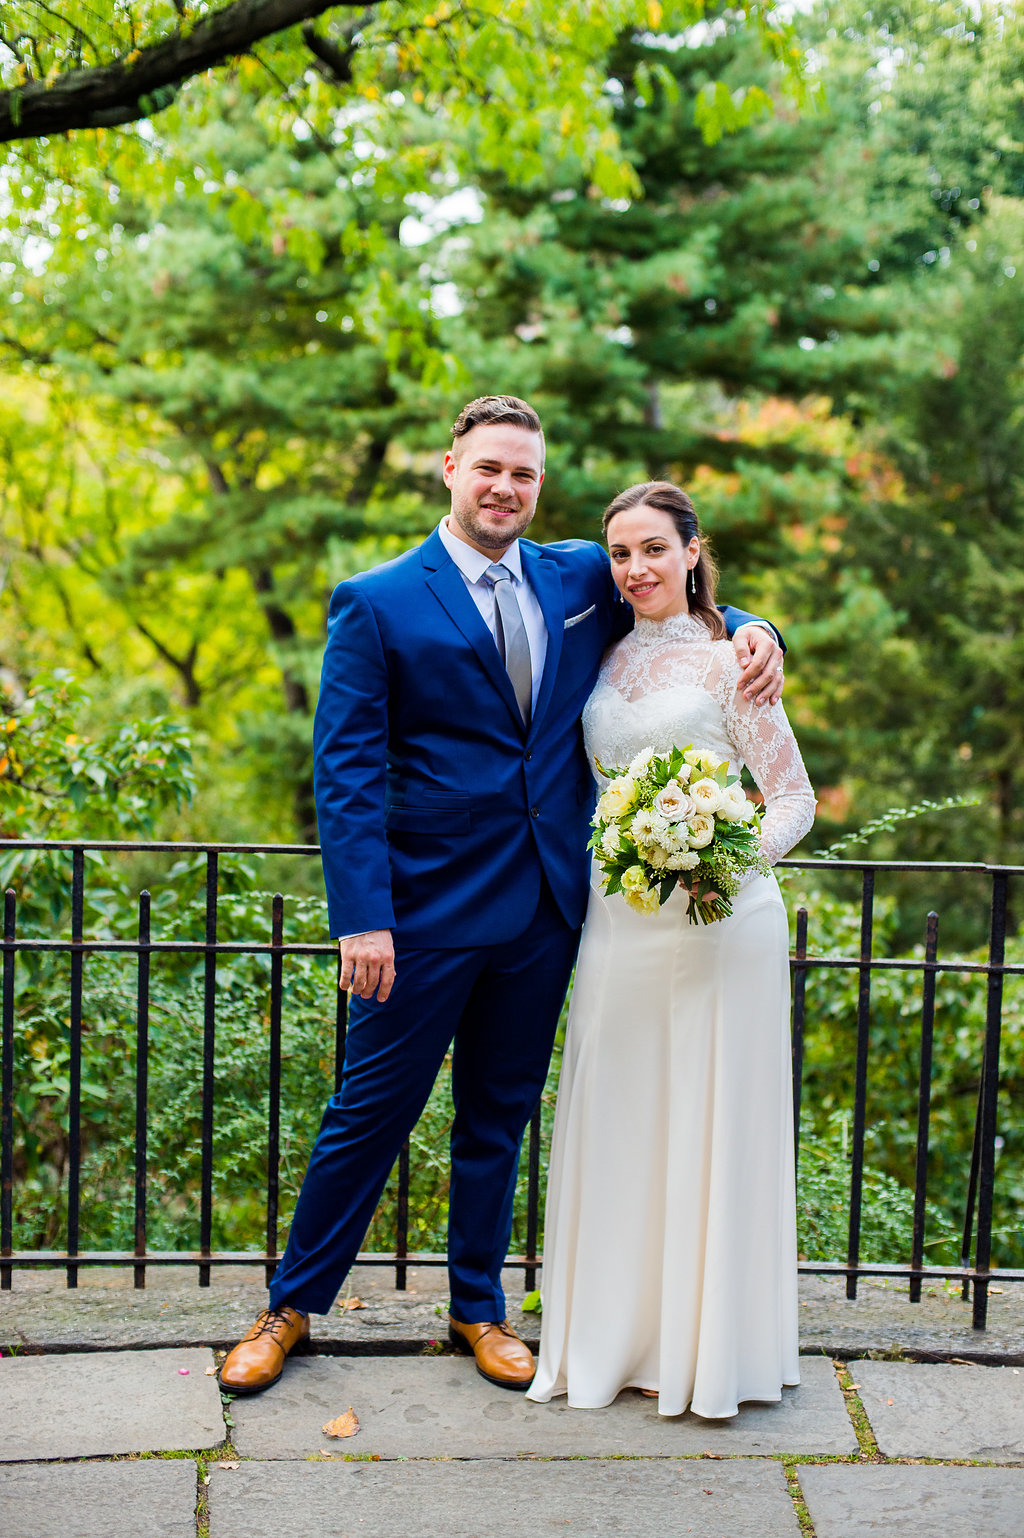 Stylish couple marries in Central Park